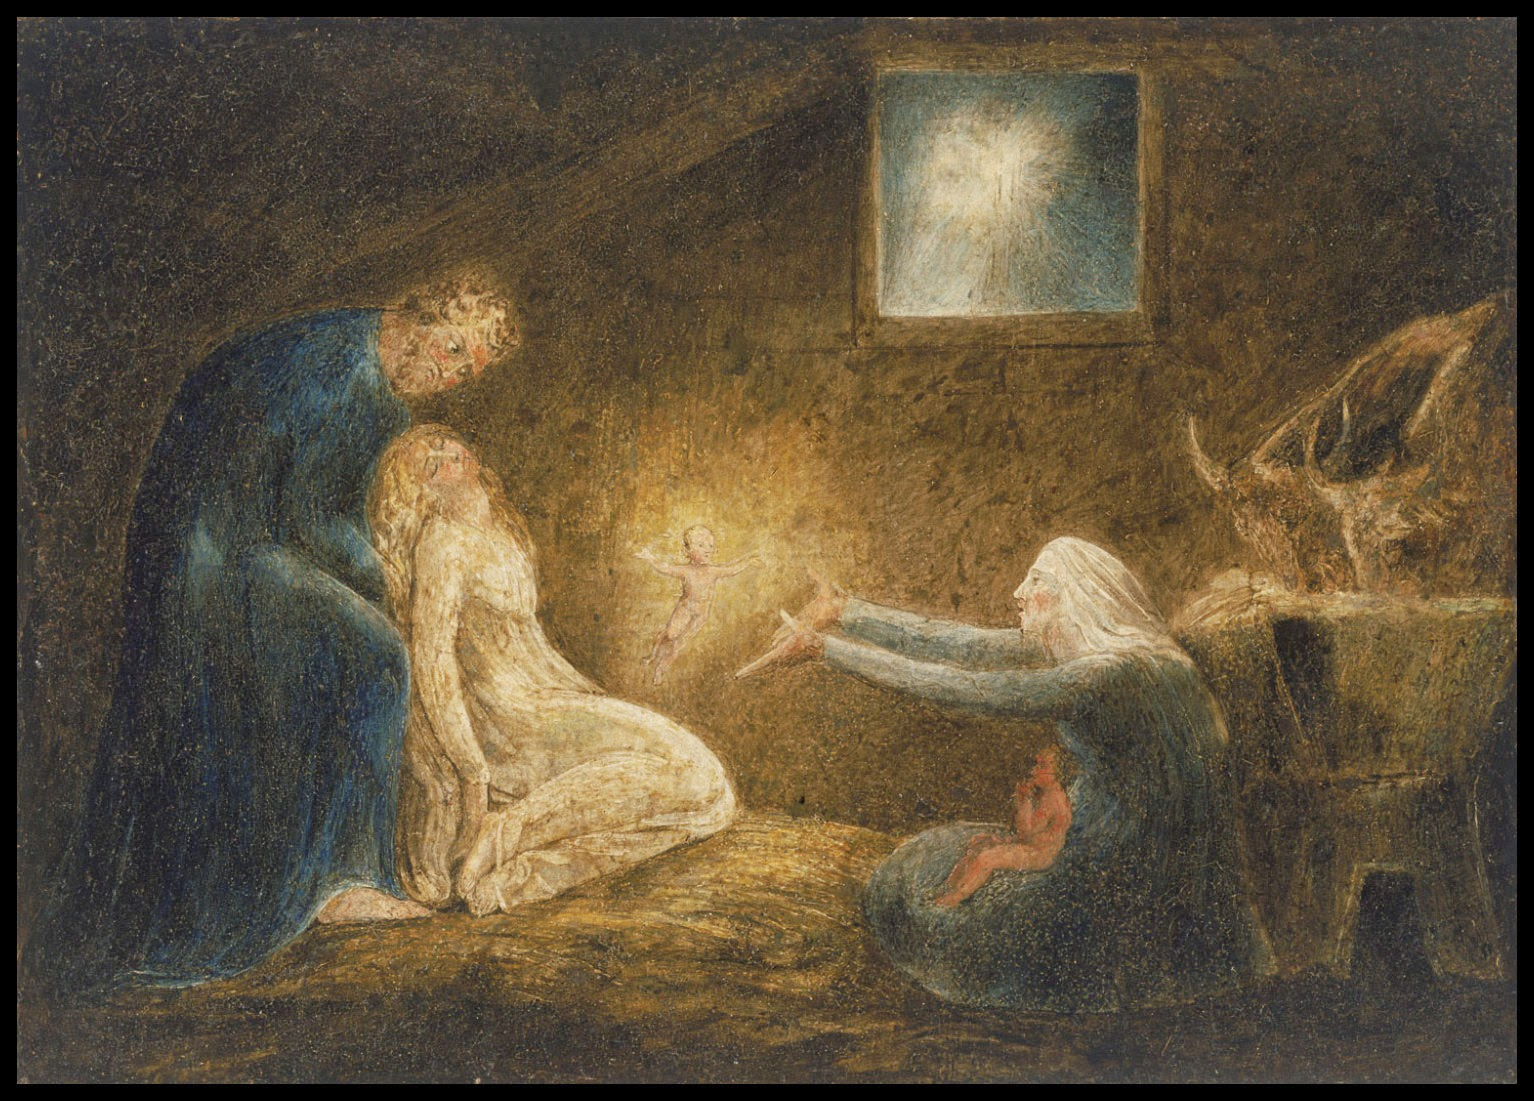 essays  the nativity by william blake 1799 or 1800 tempera on copper 10 3 4 x 15 1 16 in gift of mrs william thomas tonner 1964 philadelphia museum of art